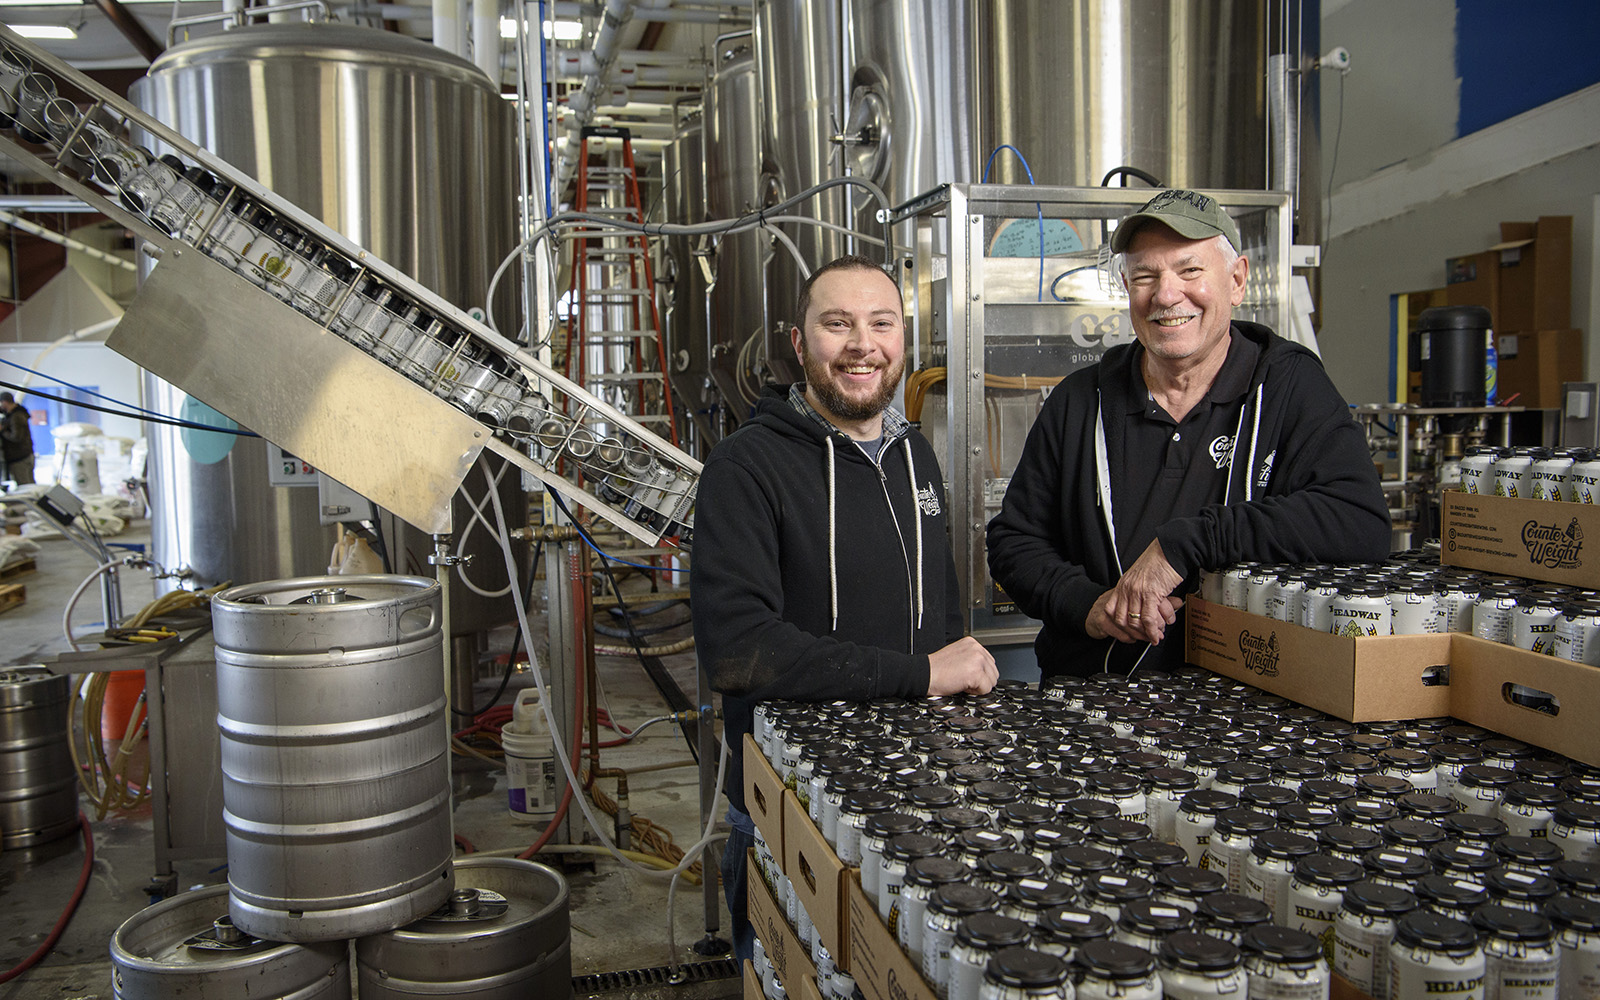 The Pastyrnaks of Counter Weight Brewing Co., just one of 1,284 businesses the CTSBDC helped in 2017 alone.  (Connecticut Small Business Development Center)